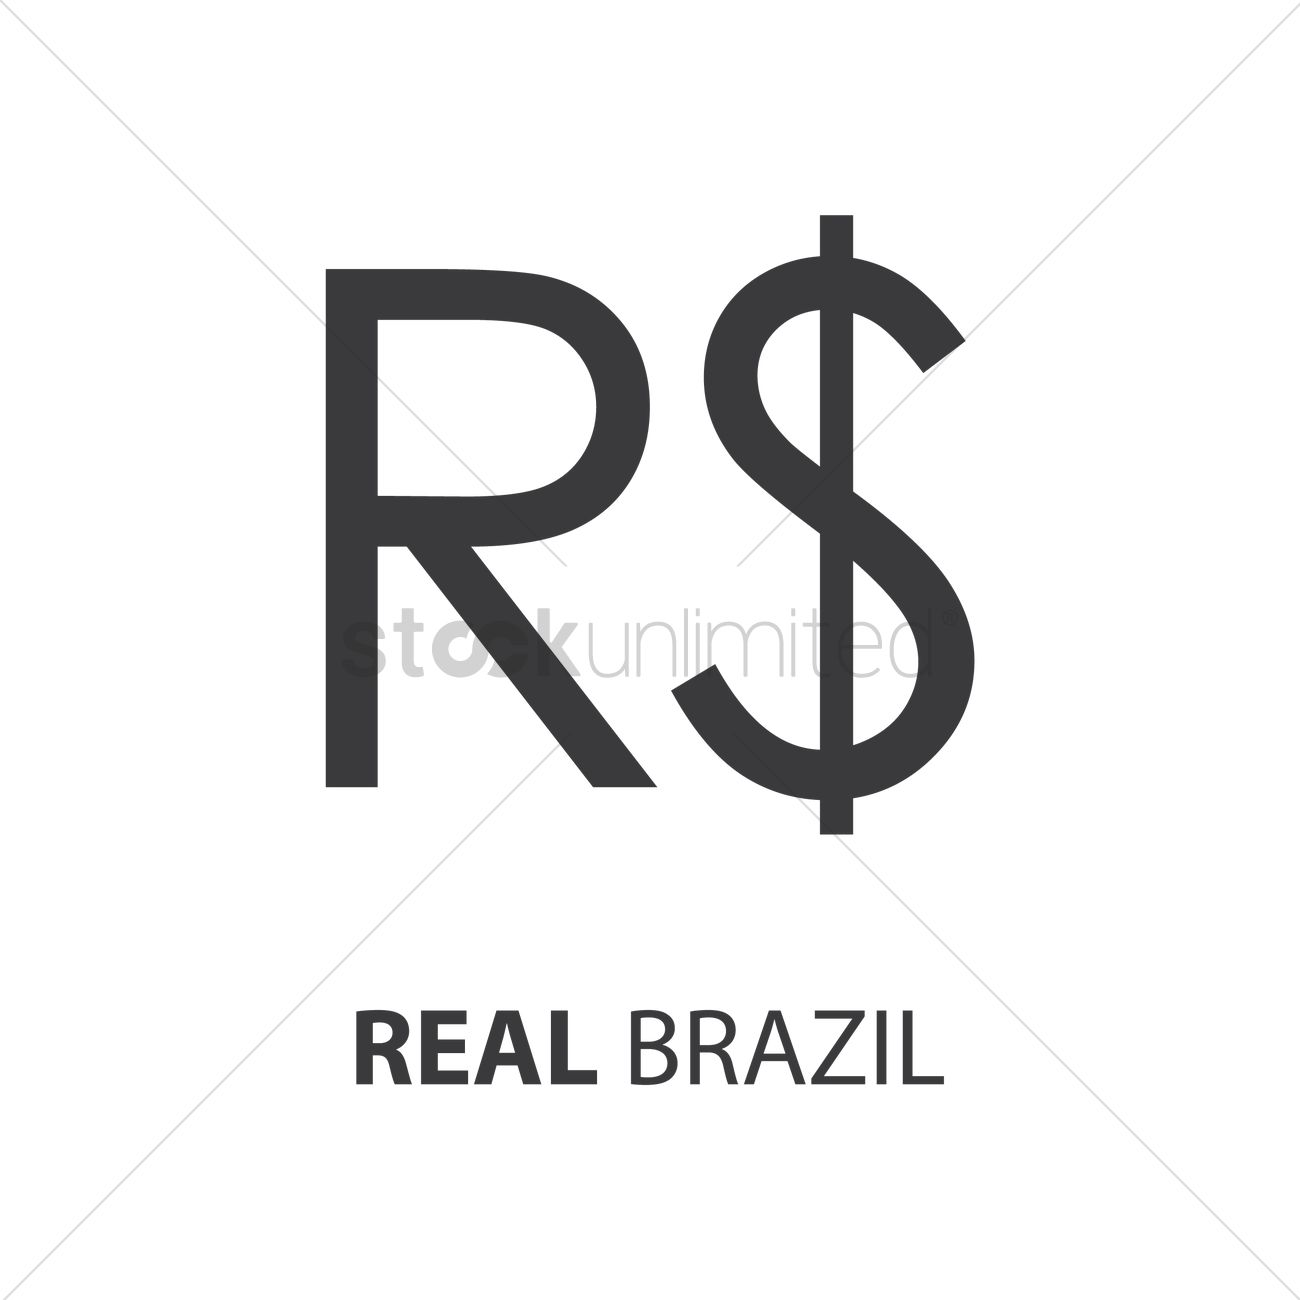 Brazilian Real Vector Image 1753668 Stockunlimited